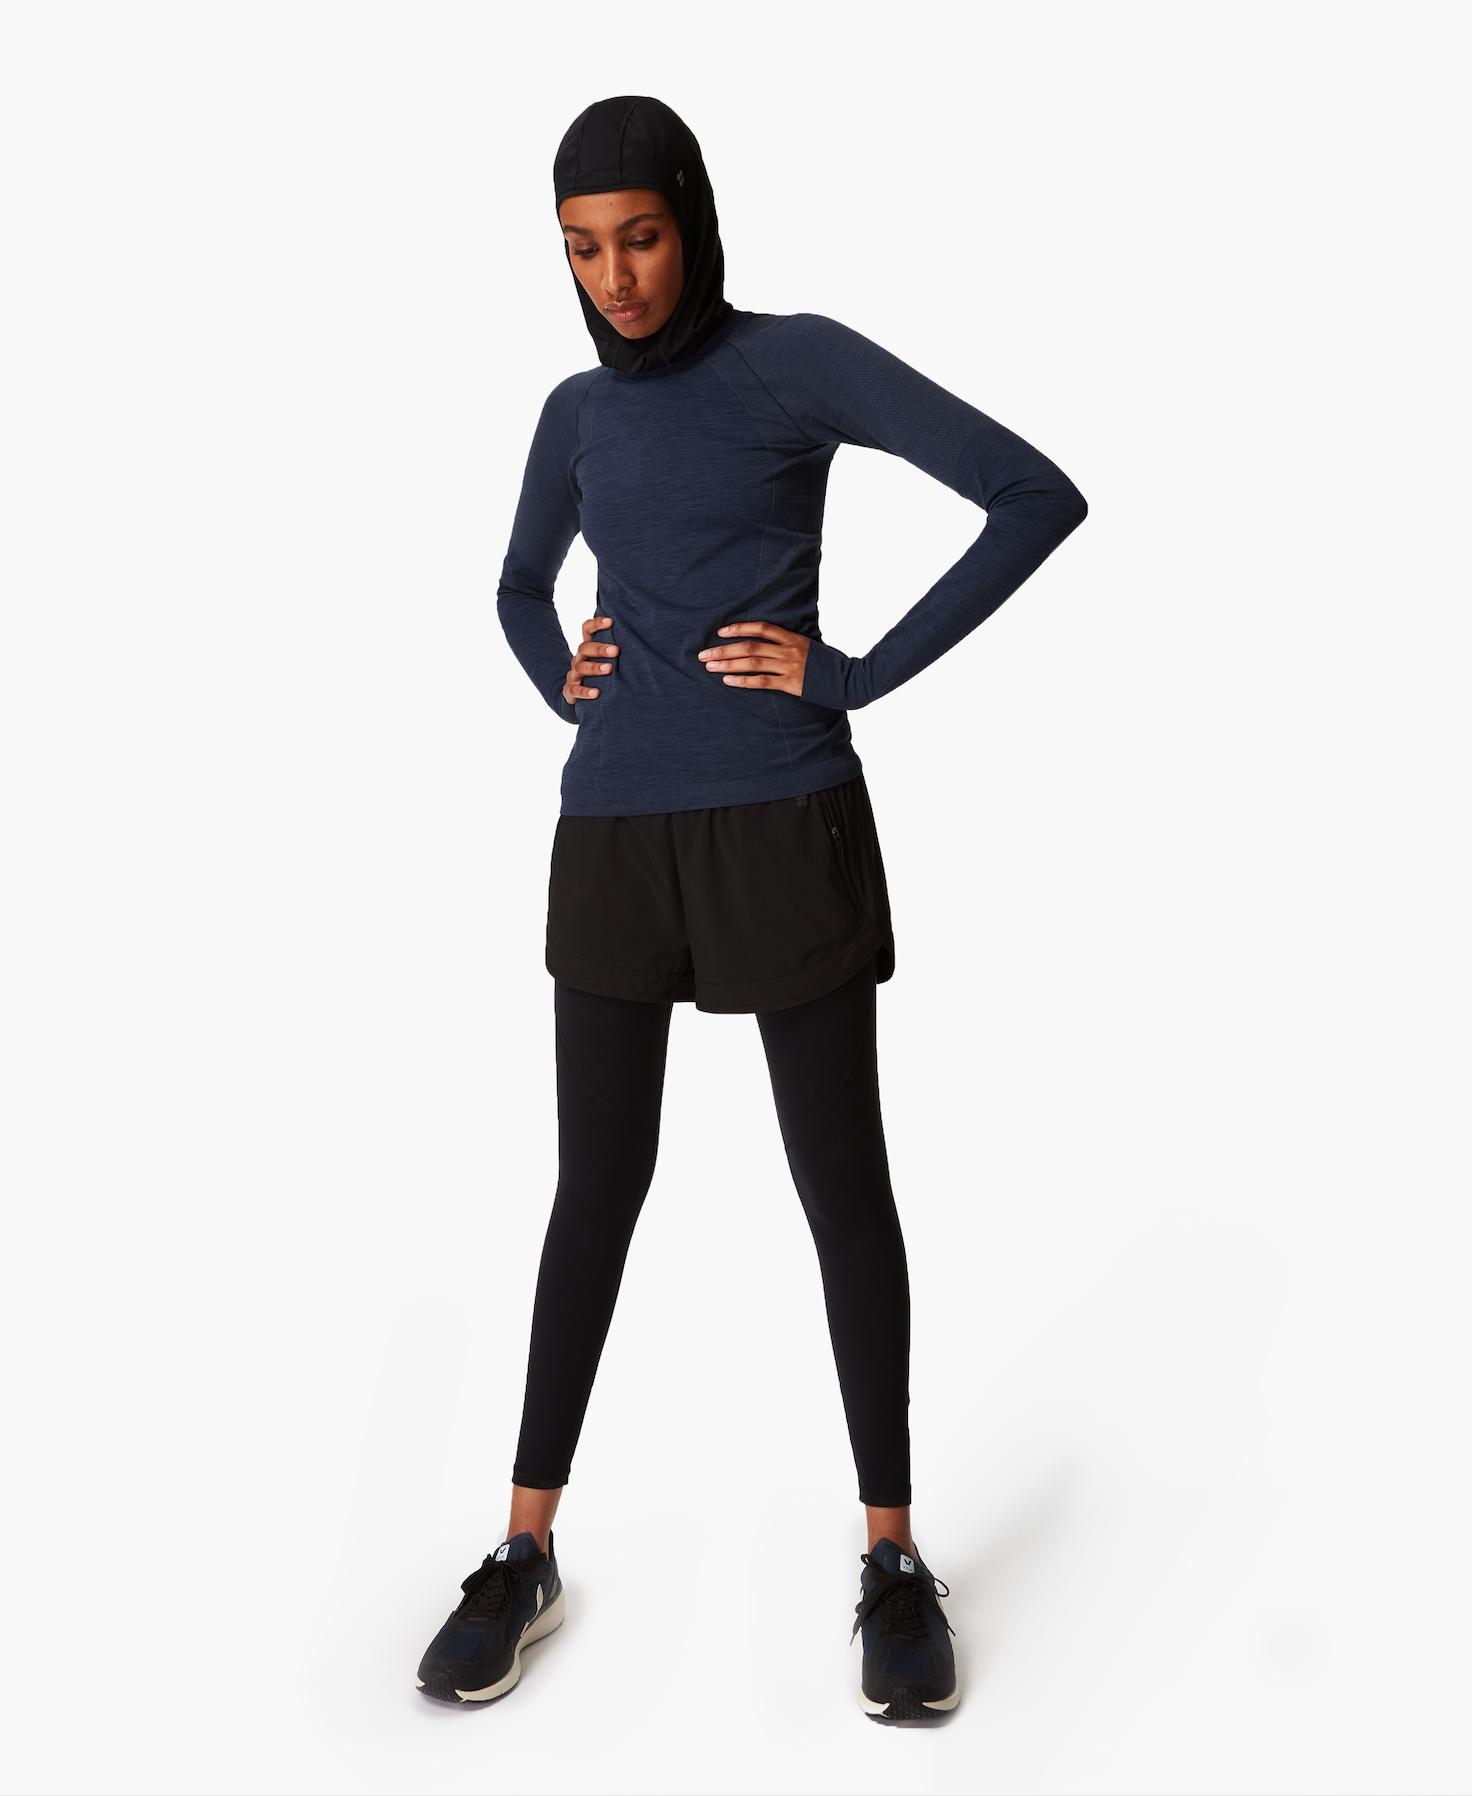 From Power Leggings to Performance Hijabs: Straus says its latest product launch was inspired by members of its own staff.